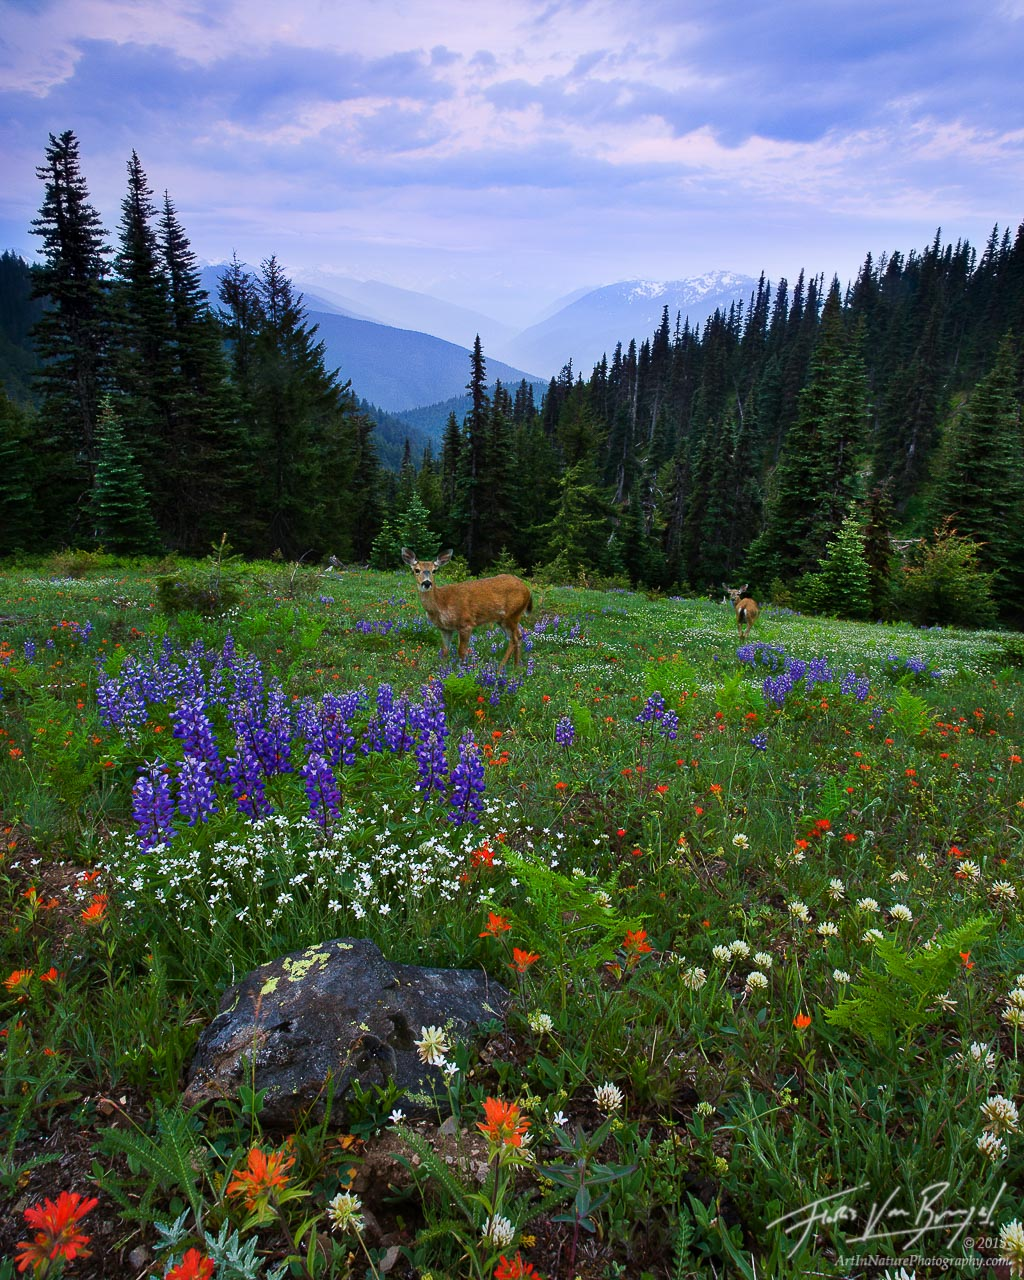 One early spring morning in Washington's Olympic National Park, in a remote section of Hurricane Ridge, I found this delightful spring garden, complete with two mule deer.